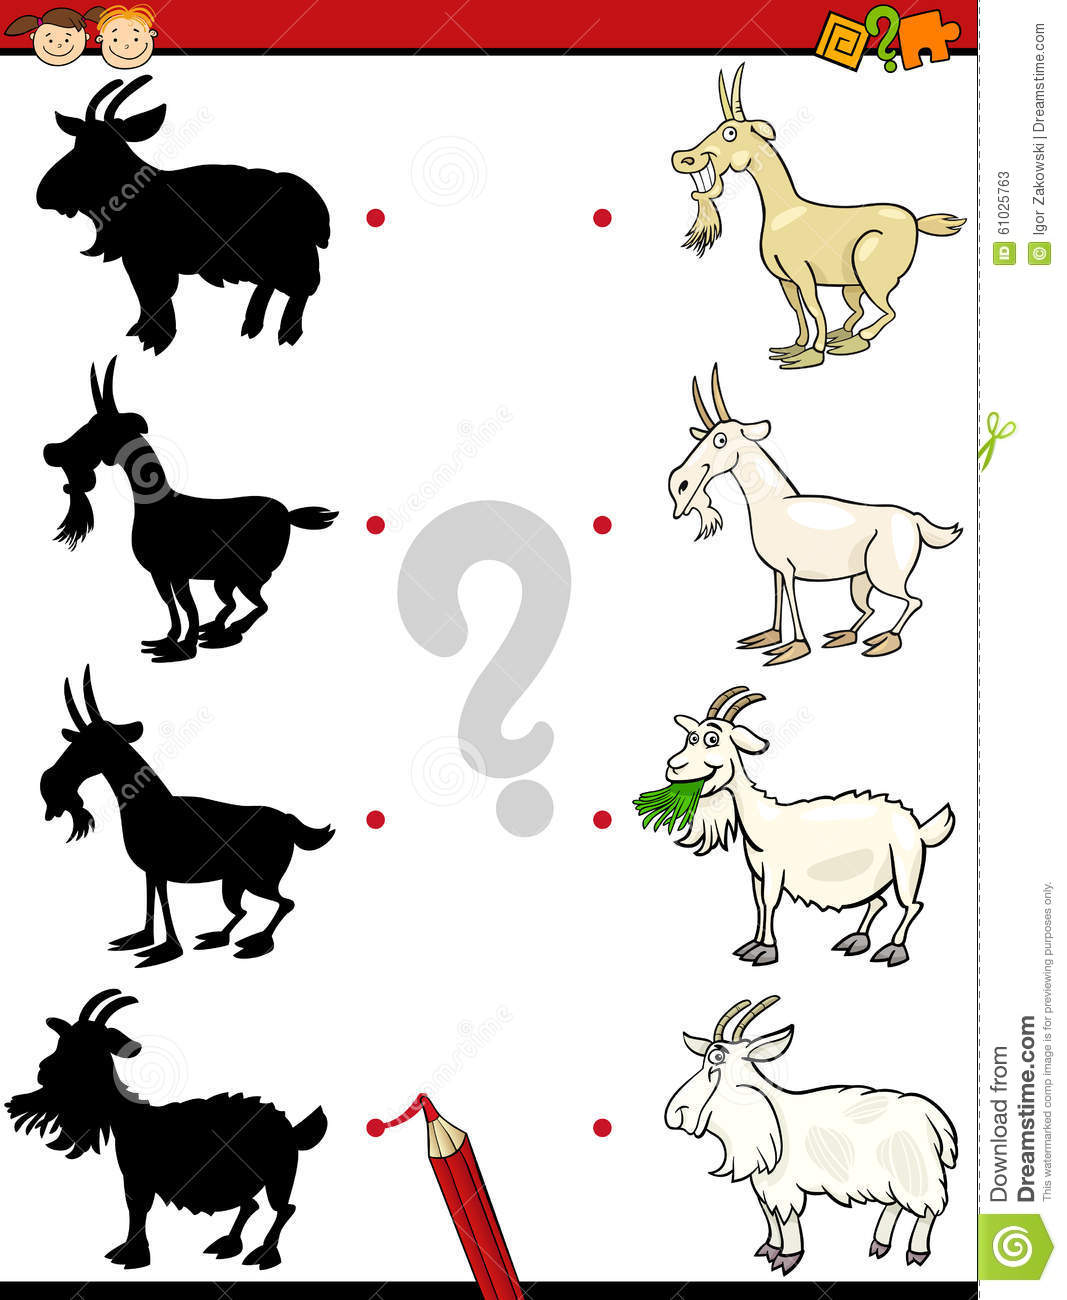 Shadows Task With Goat Stock Vector Illustration Of